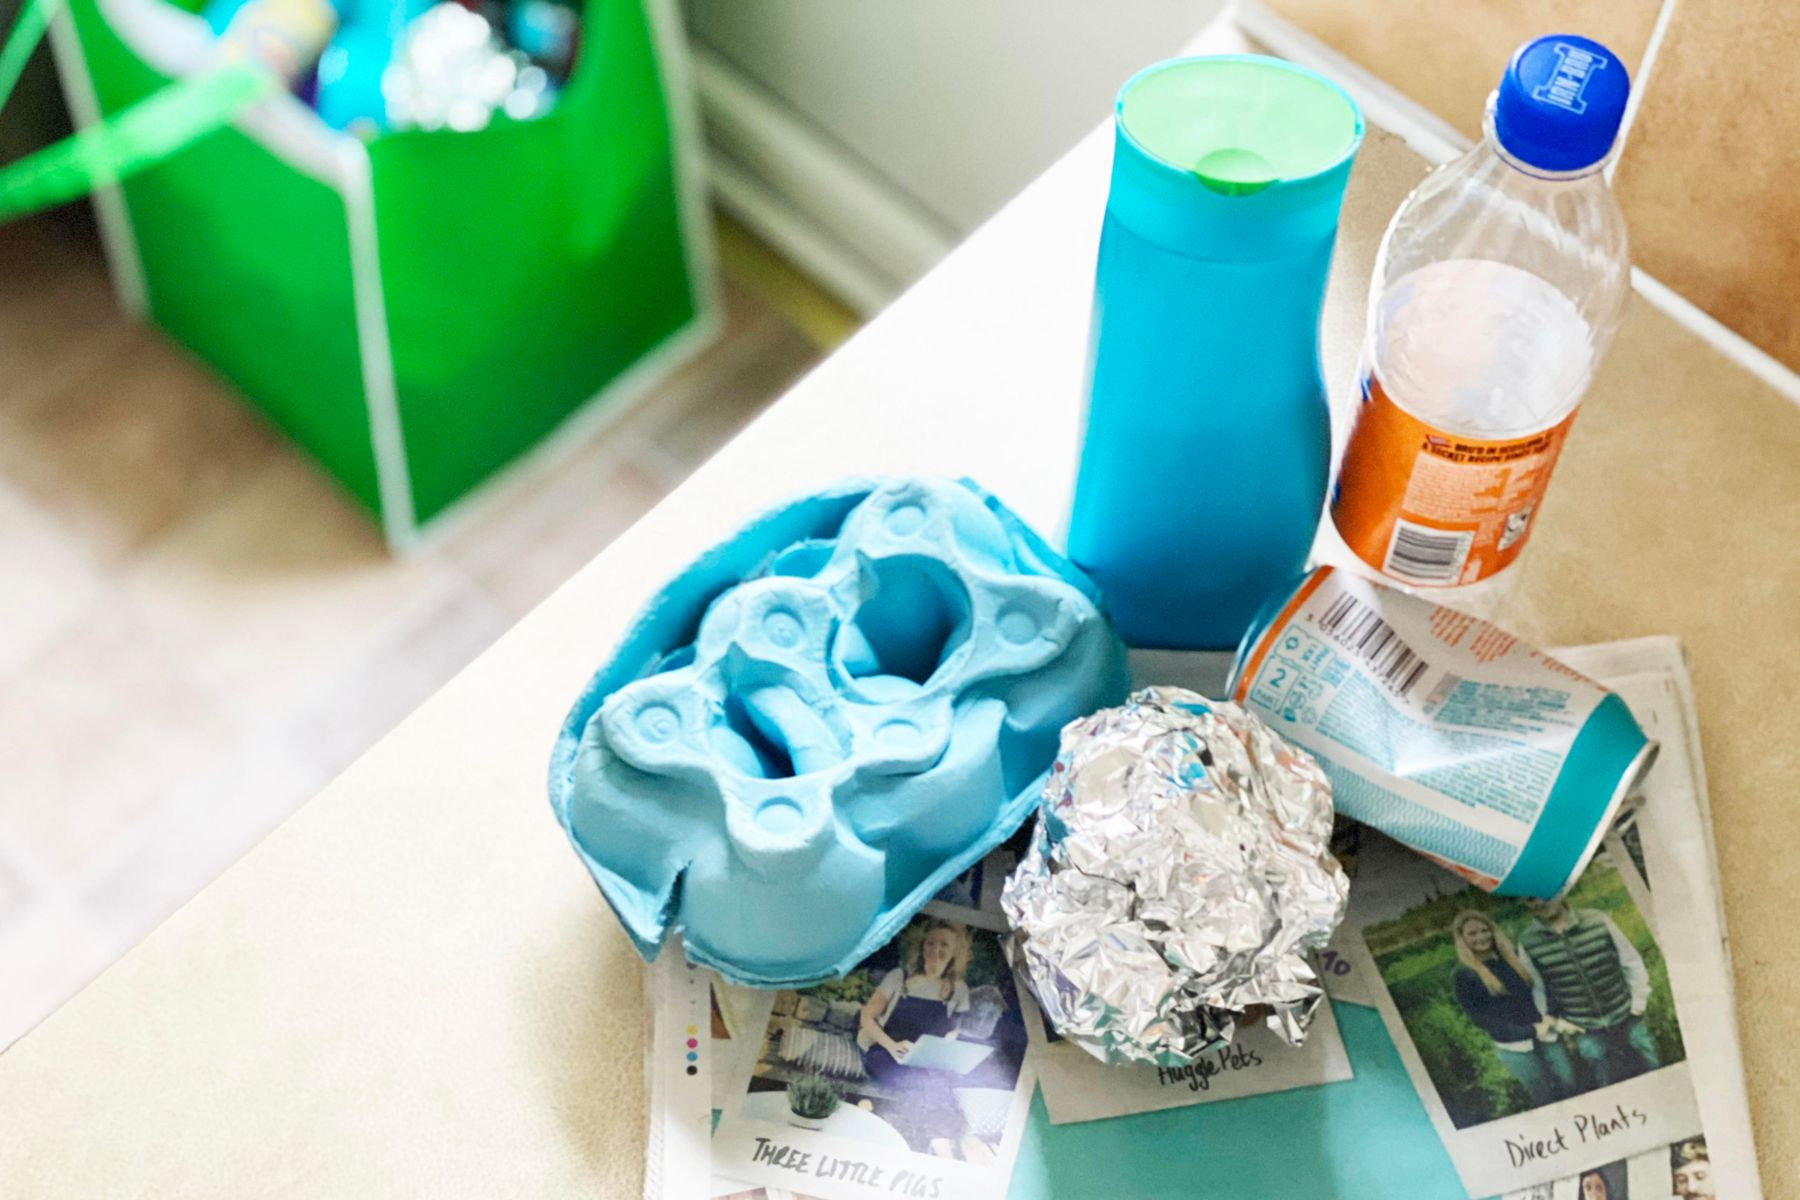 A collection of mixed recyclable waste